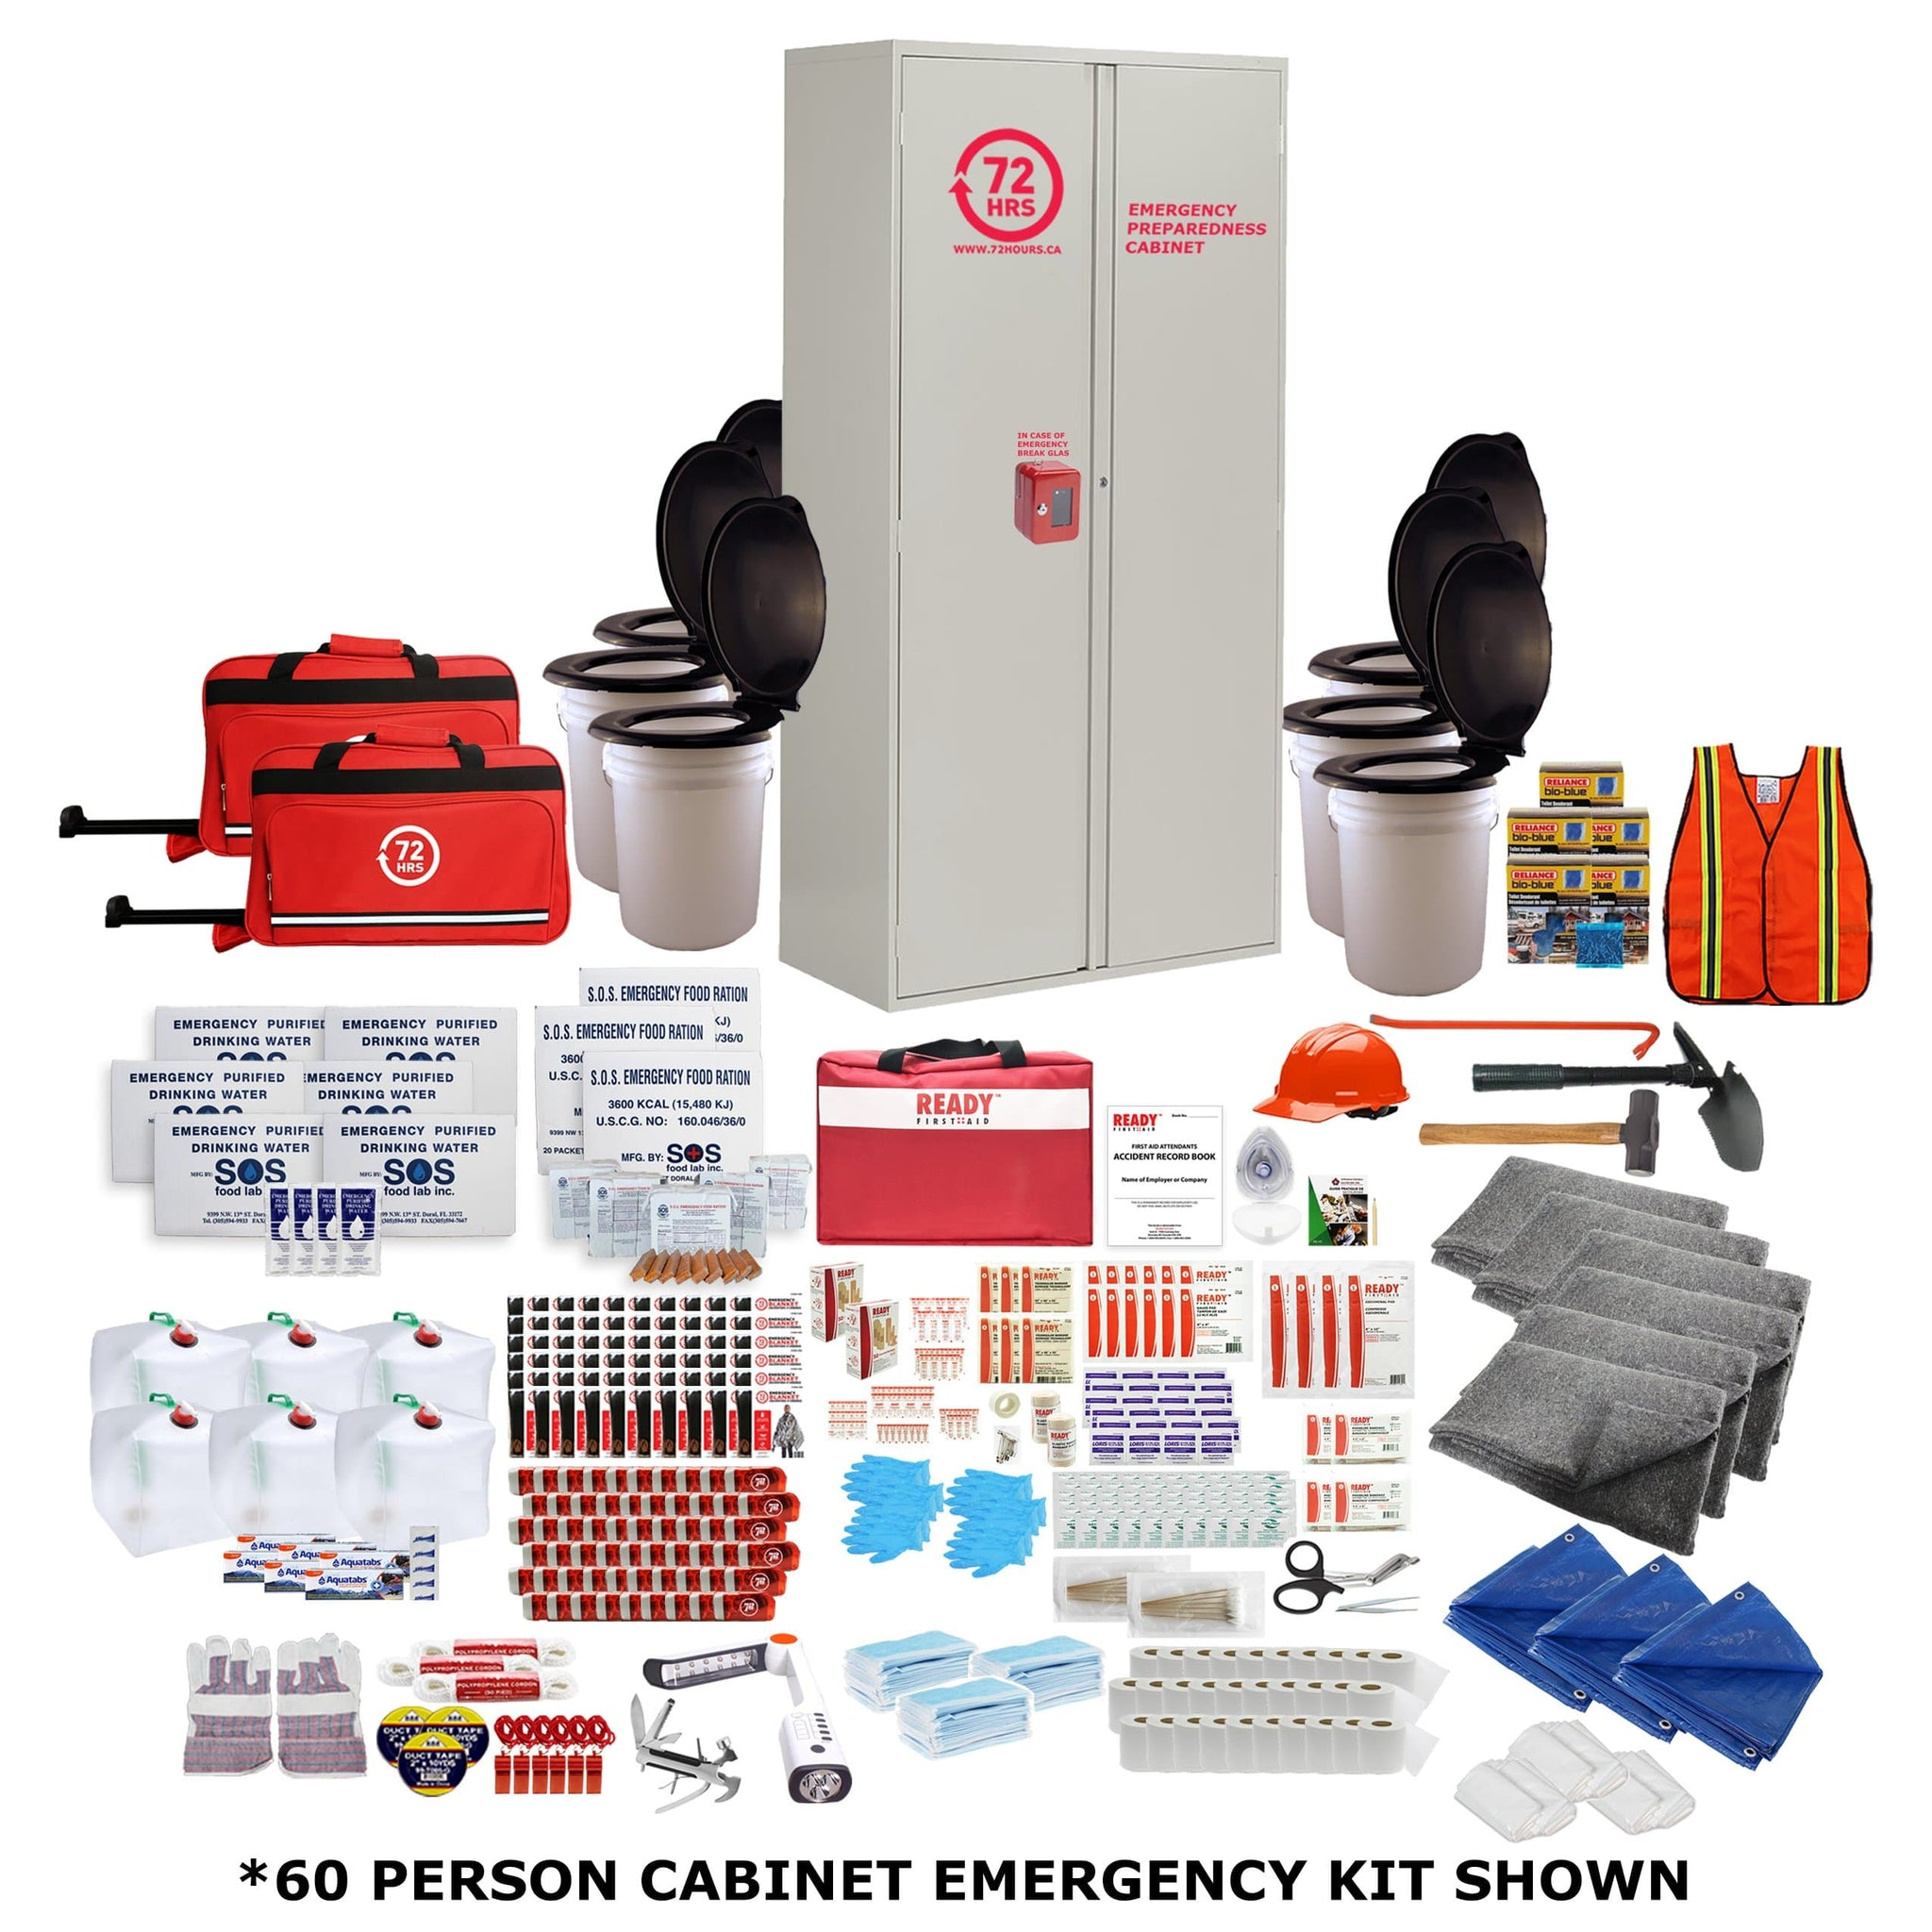 500 Person Emergency Cabinet Kit